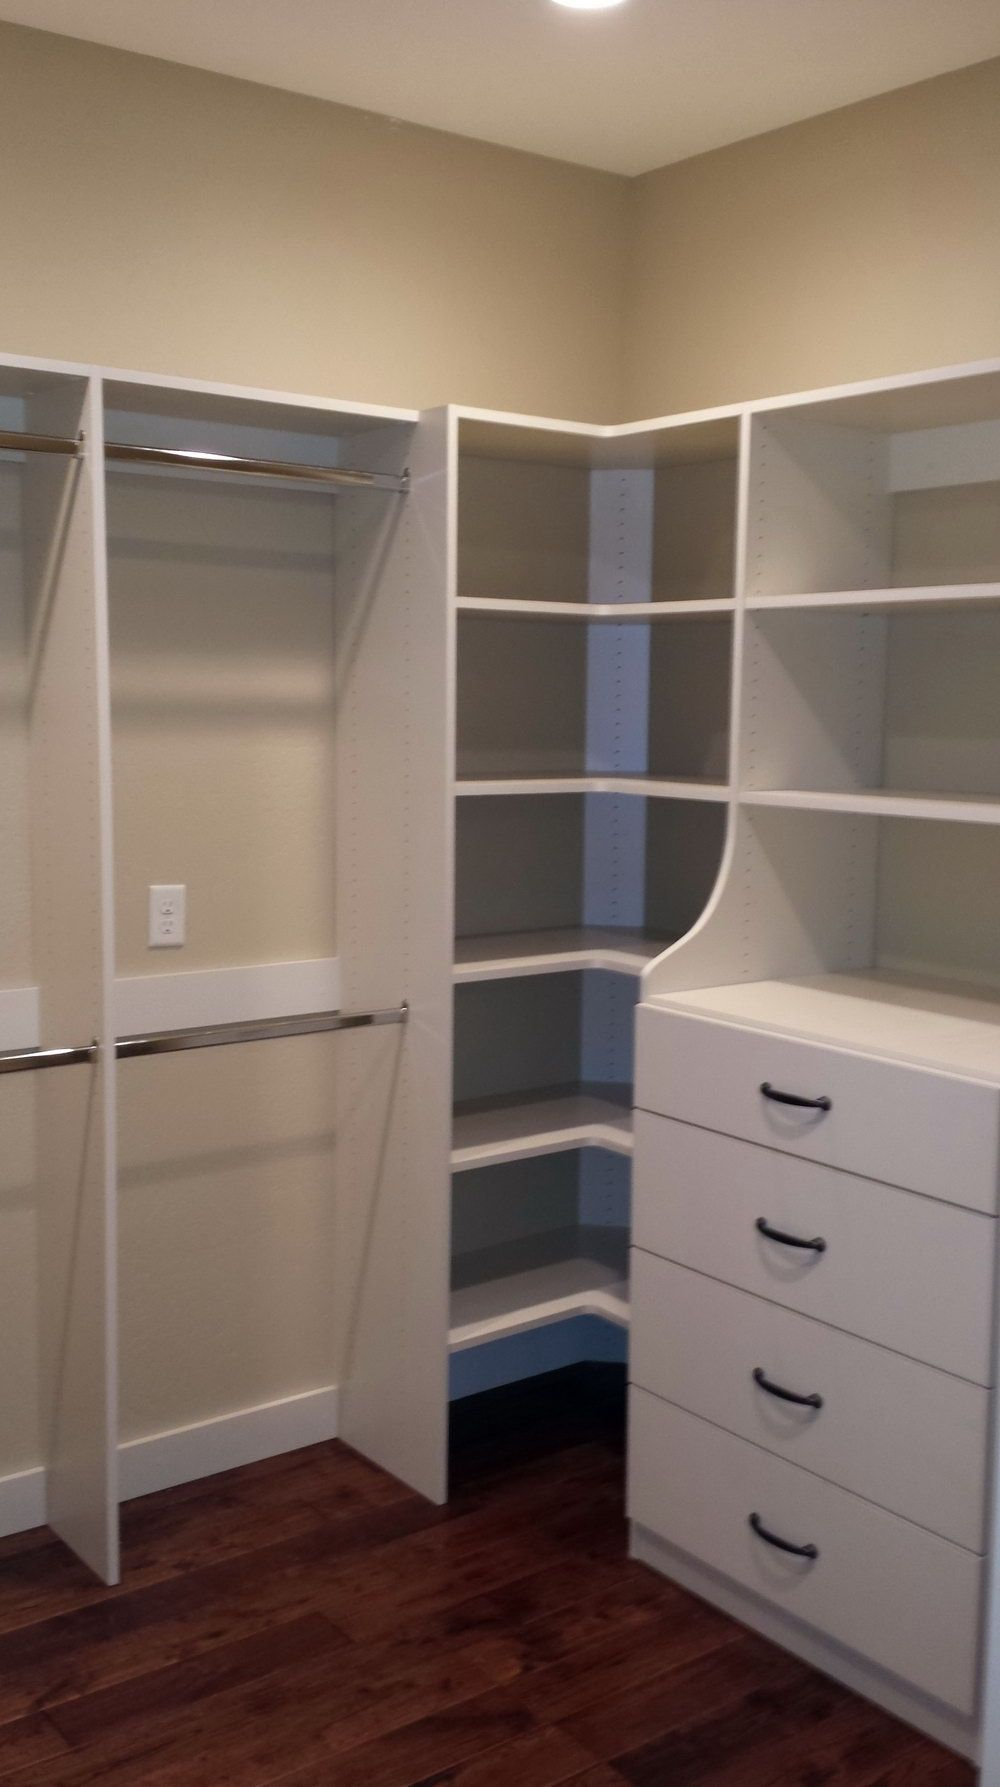 Corner Closet Shelf Unit | http://tenerife-top.com | Pinterest